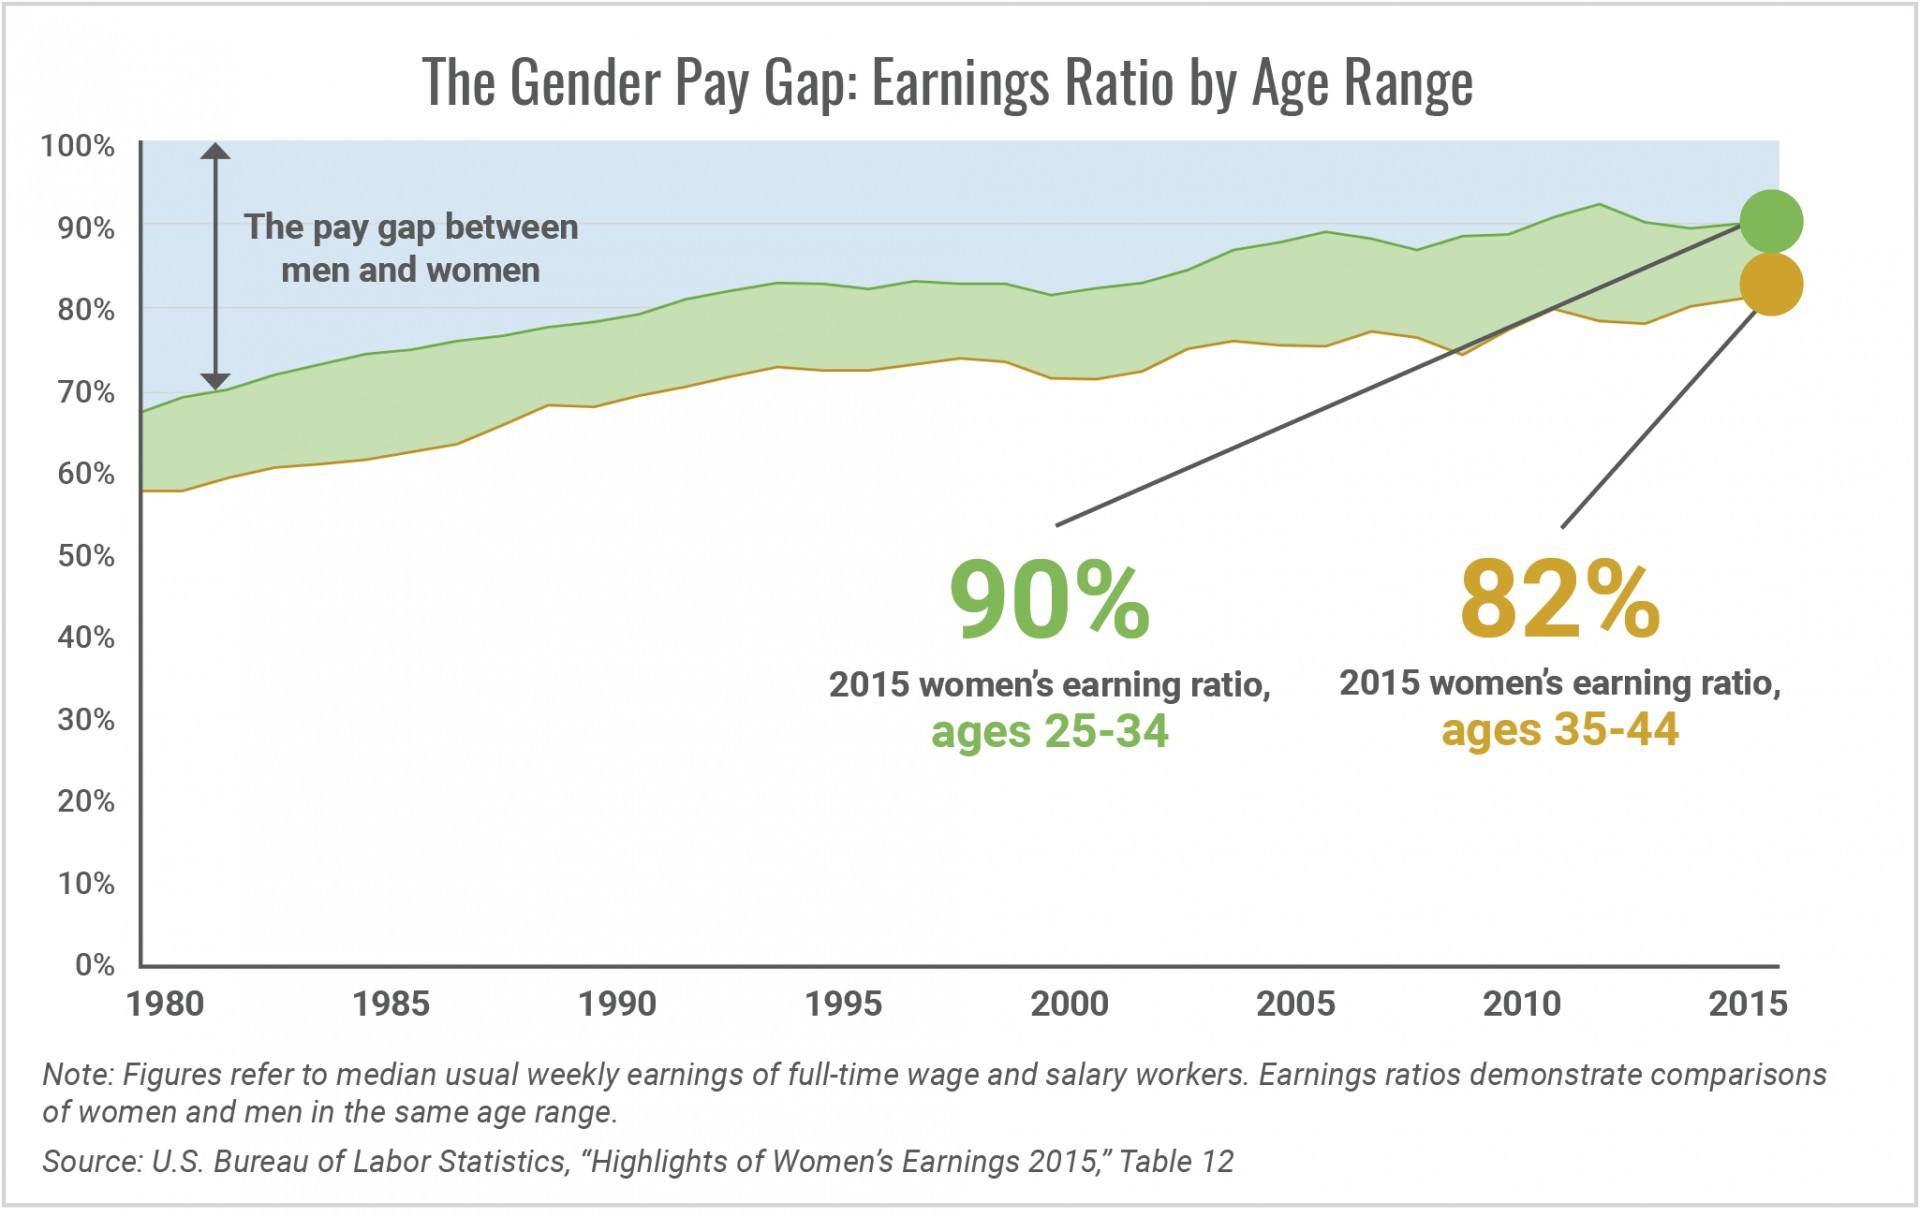 007 Research Paper The Gender Pay Earnings Ratio By Age Range1505304619 Top Gap In India Wage Outline 1920